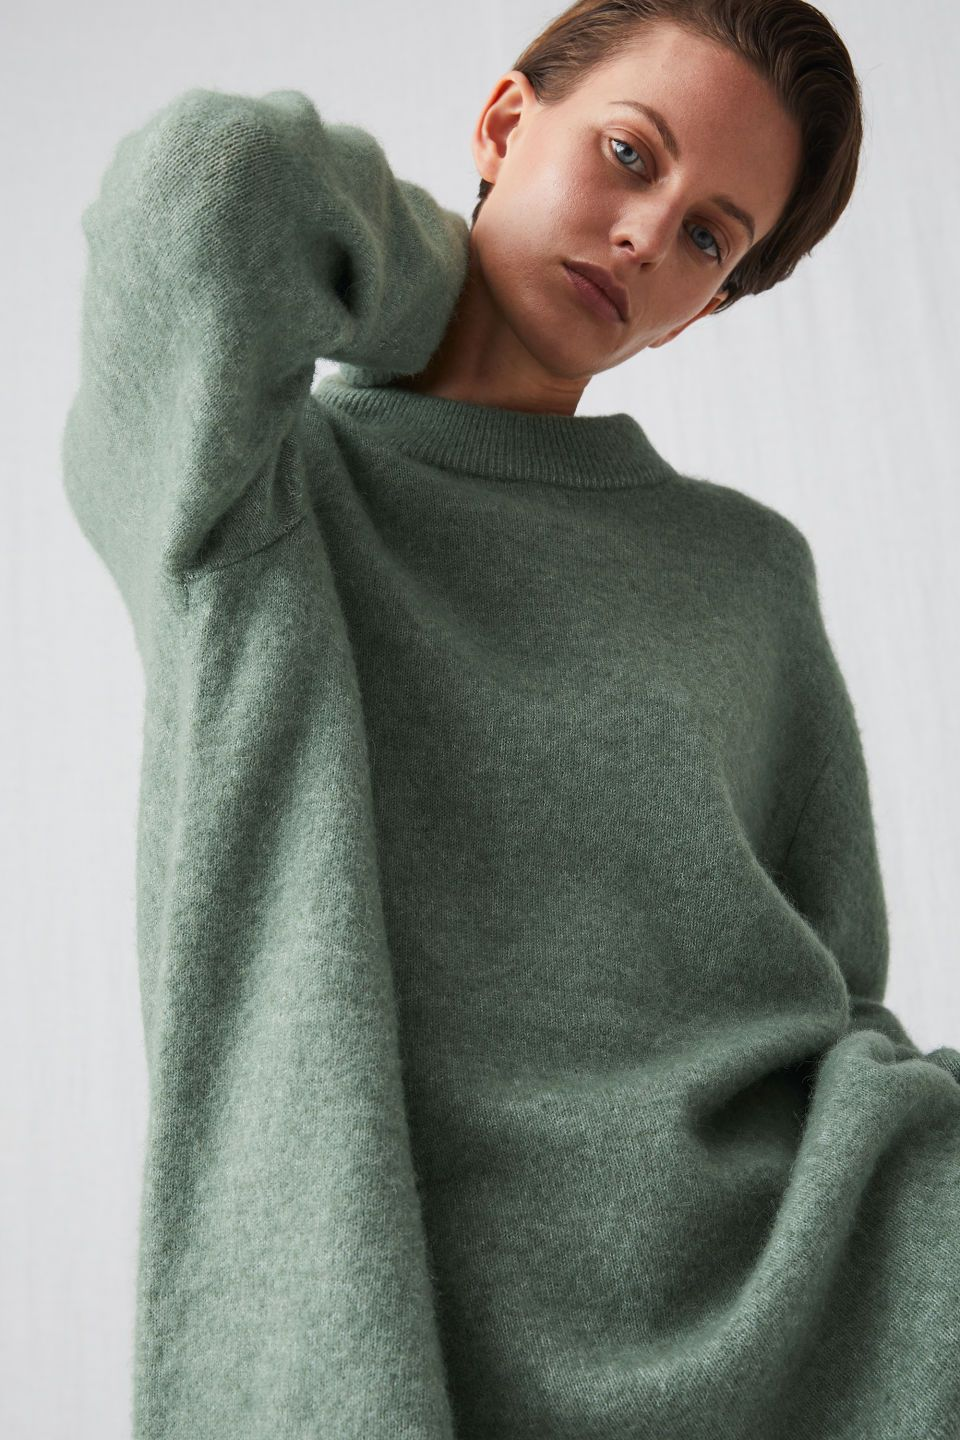 f6a710f880355b 222032-114 Alpaca Blend Knitted Tunic. The mix of alpaca and wool gives a  soft and cosy feel to this slightly oversized knitted tunic.